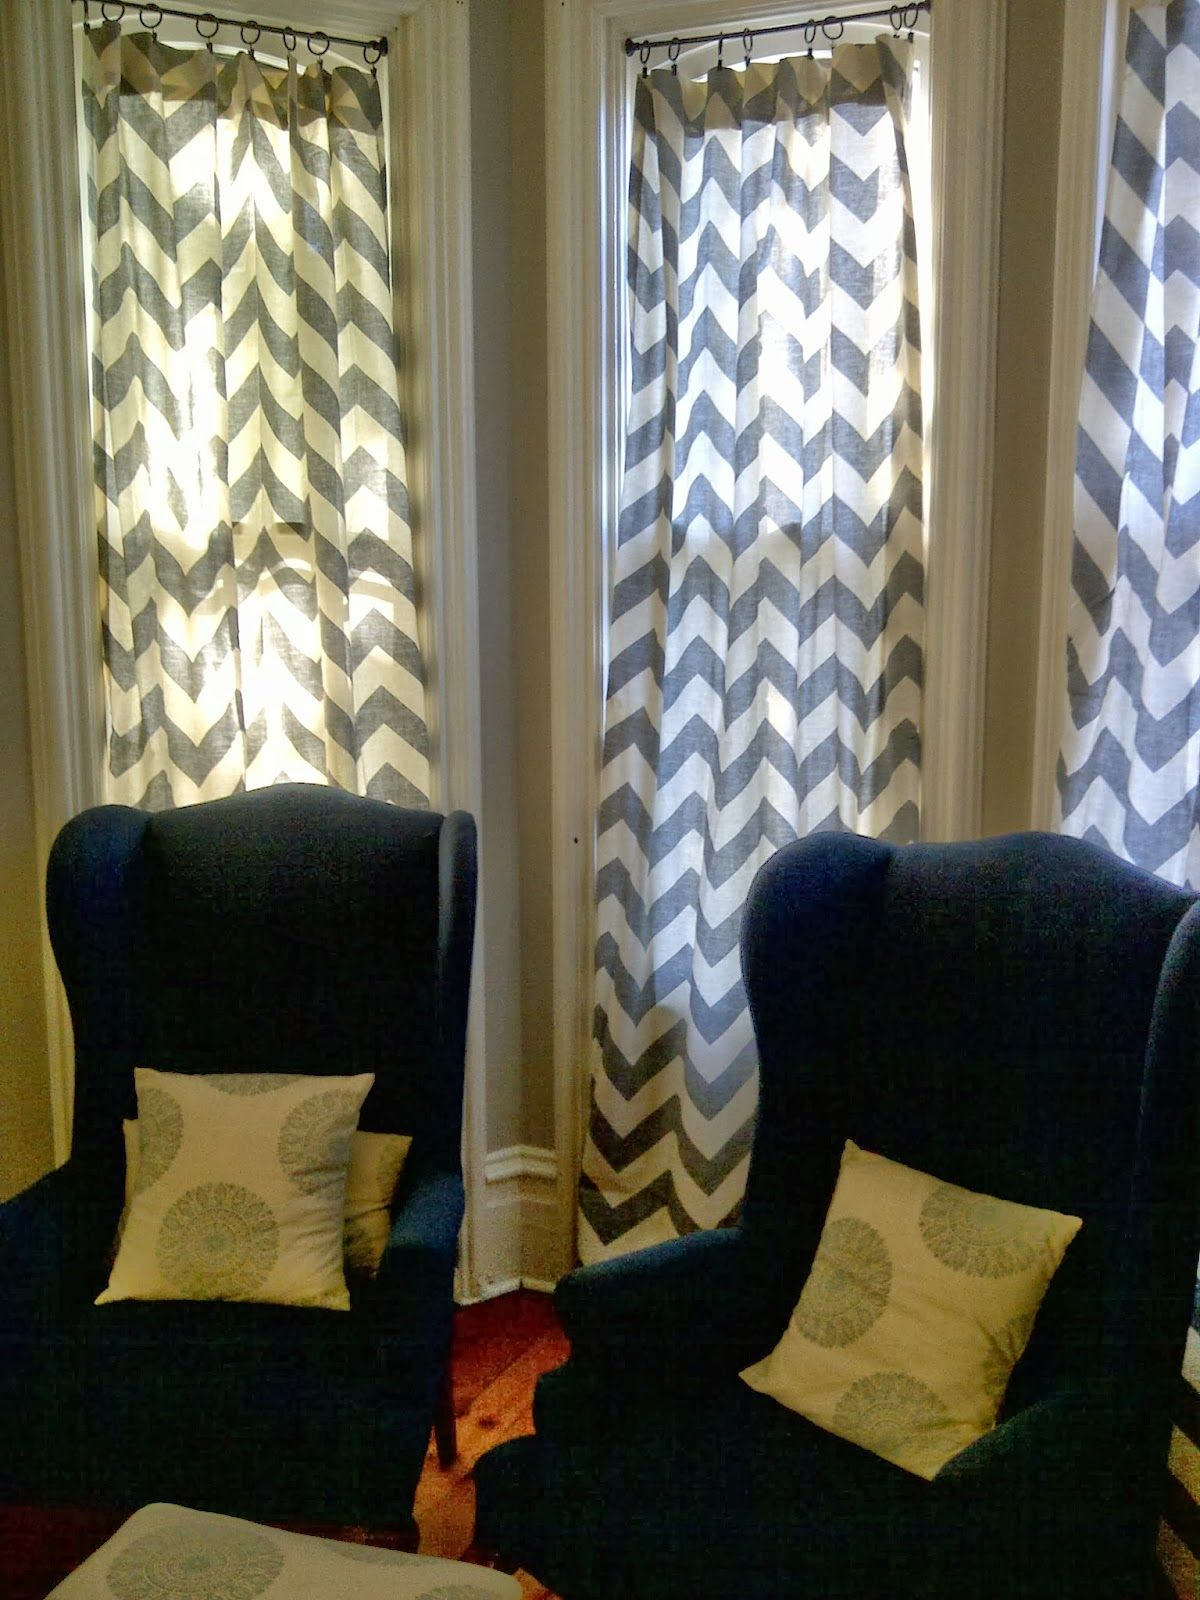 Chevron Living Room Curtains Red And Gray Designs Brick Home Love New My Special Things